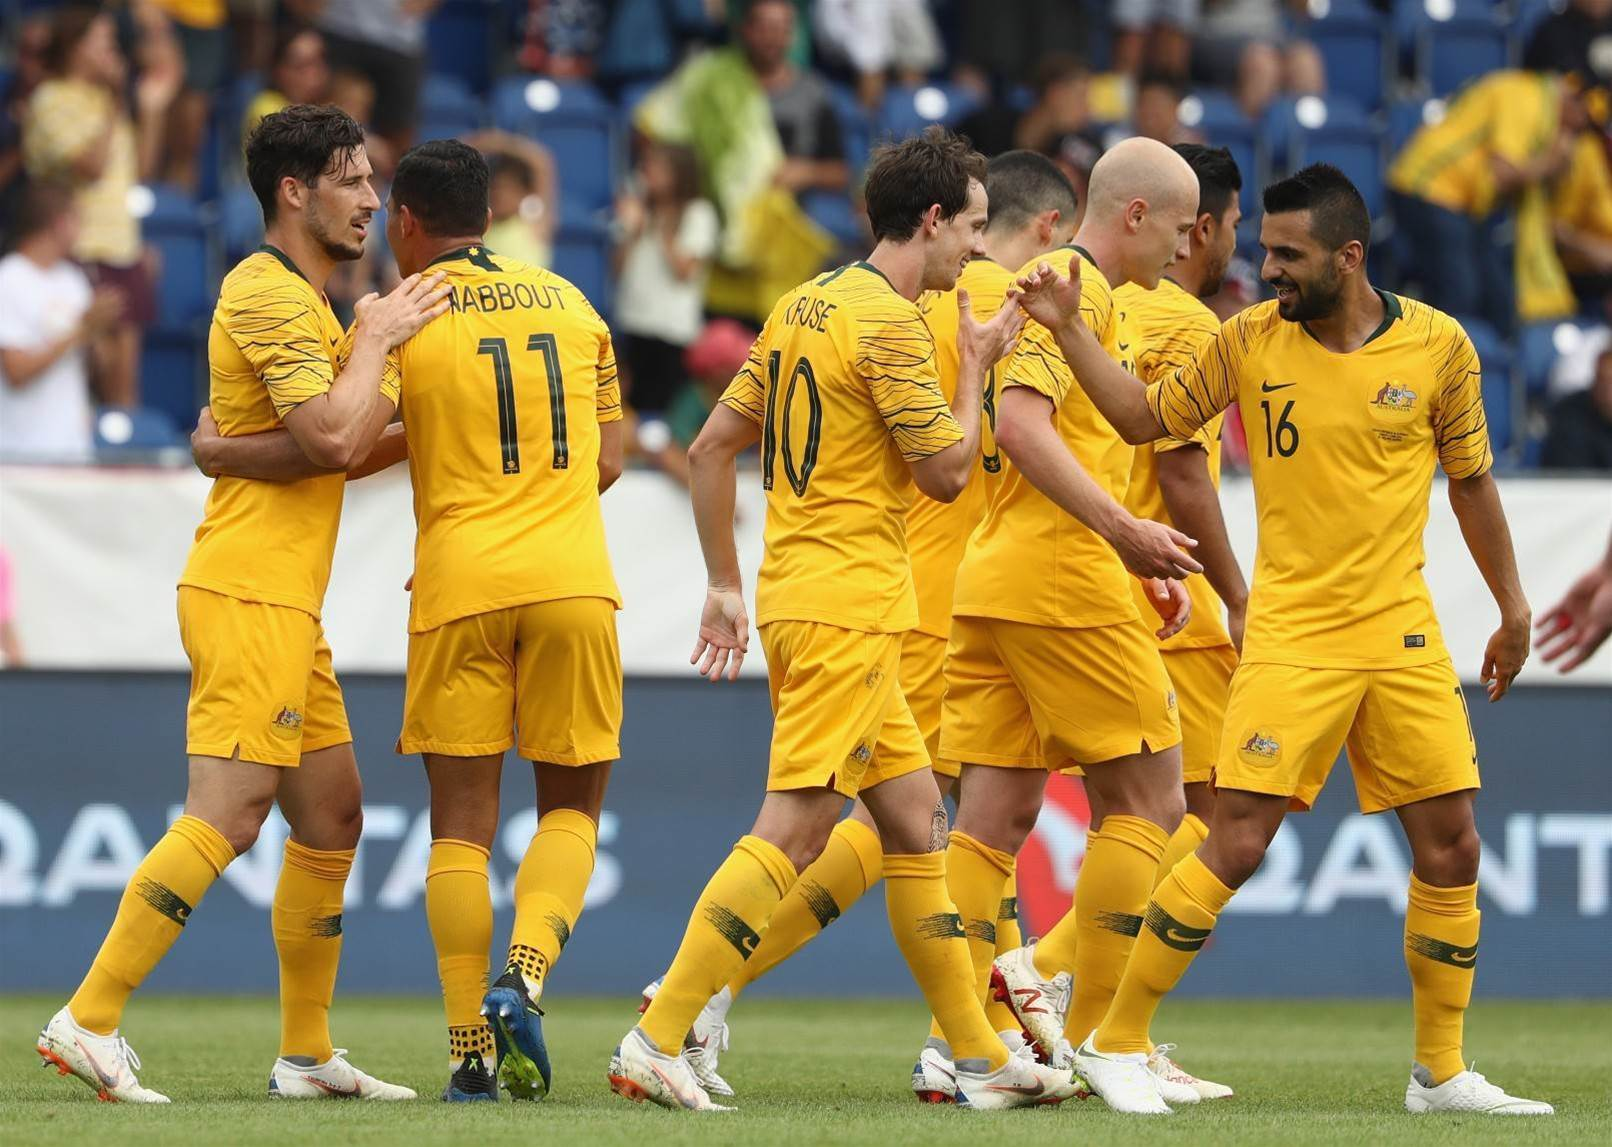 Seven Forwards Make It to Australia's 2018 FIFA World Cup